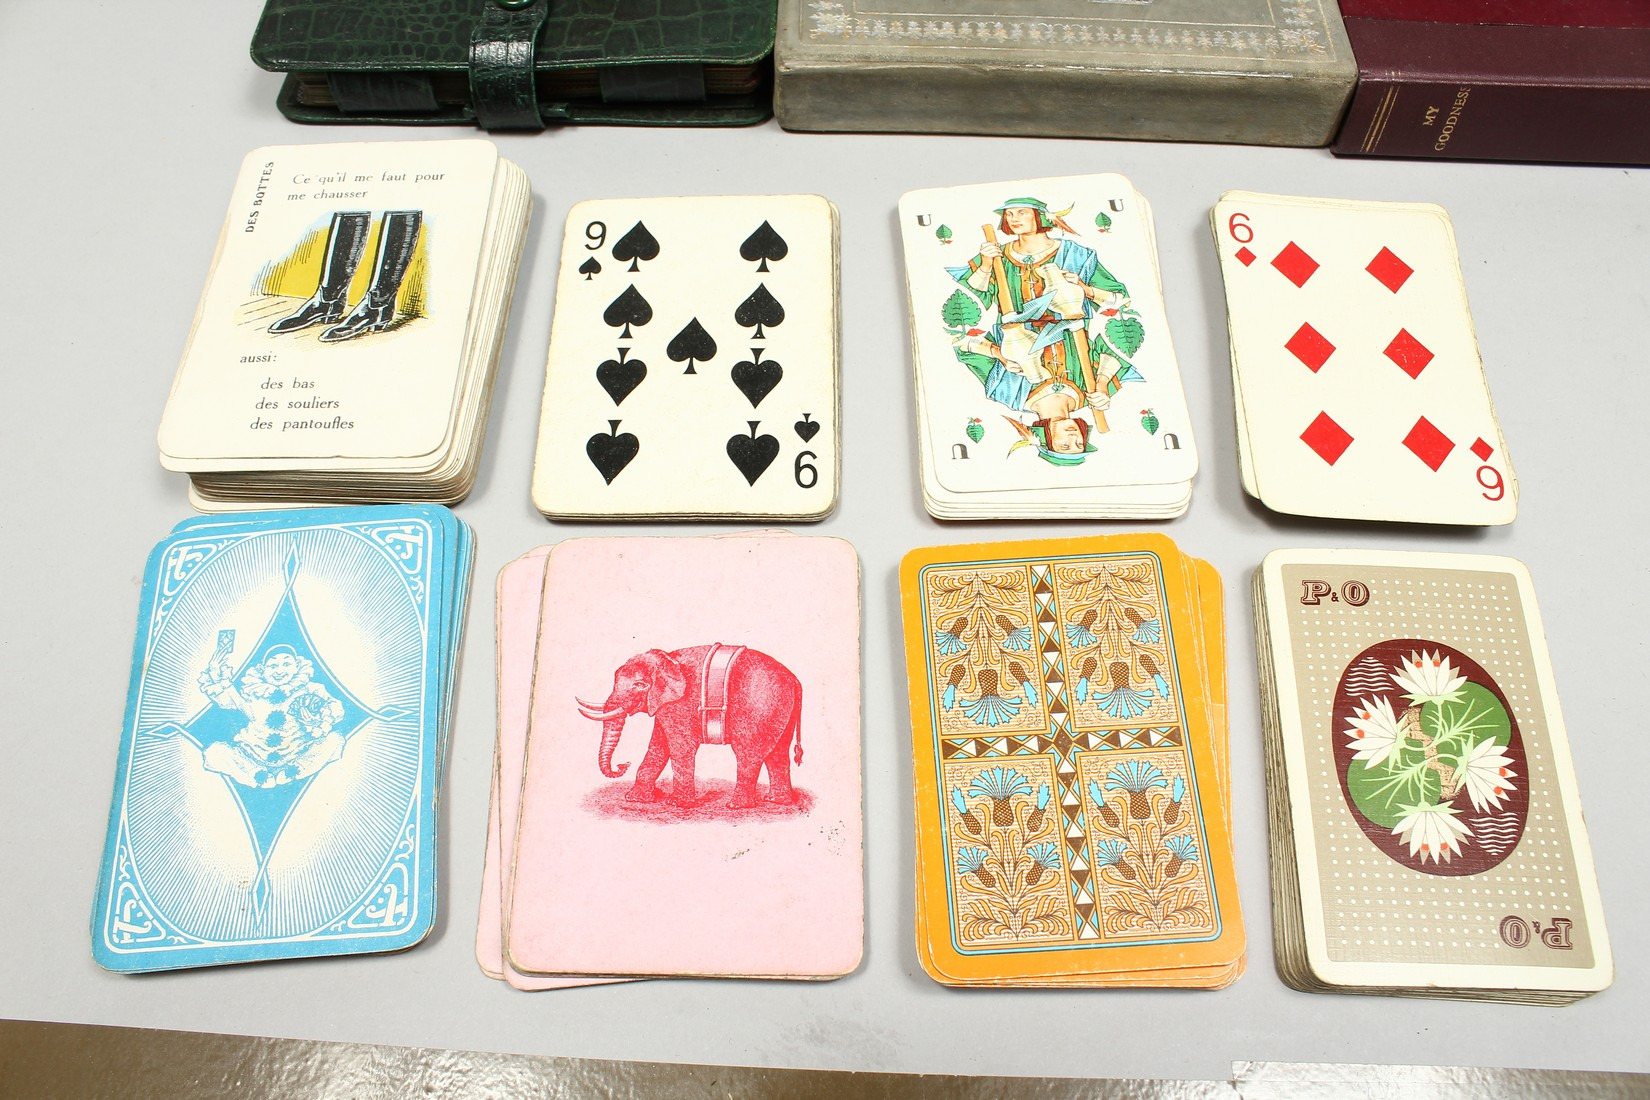 A COLLECTION OF VARIOUS PLAYING CARDS. - Image 2 of 16